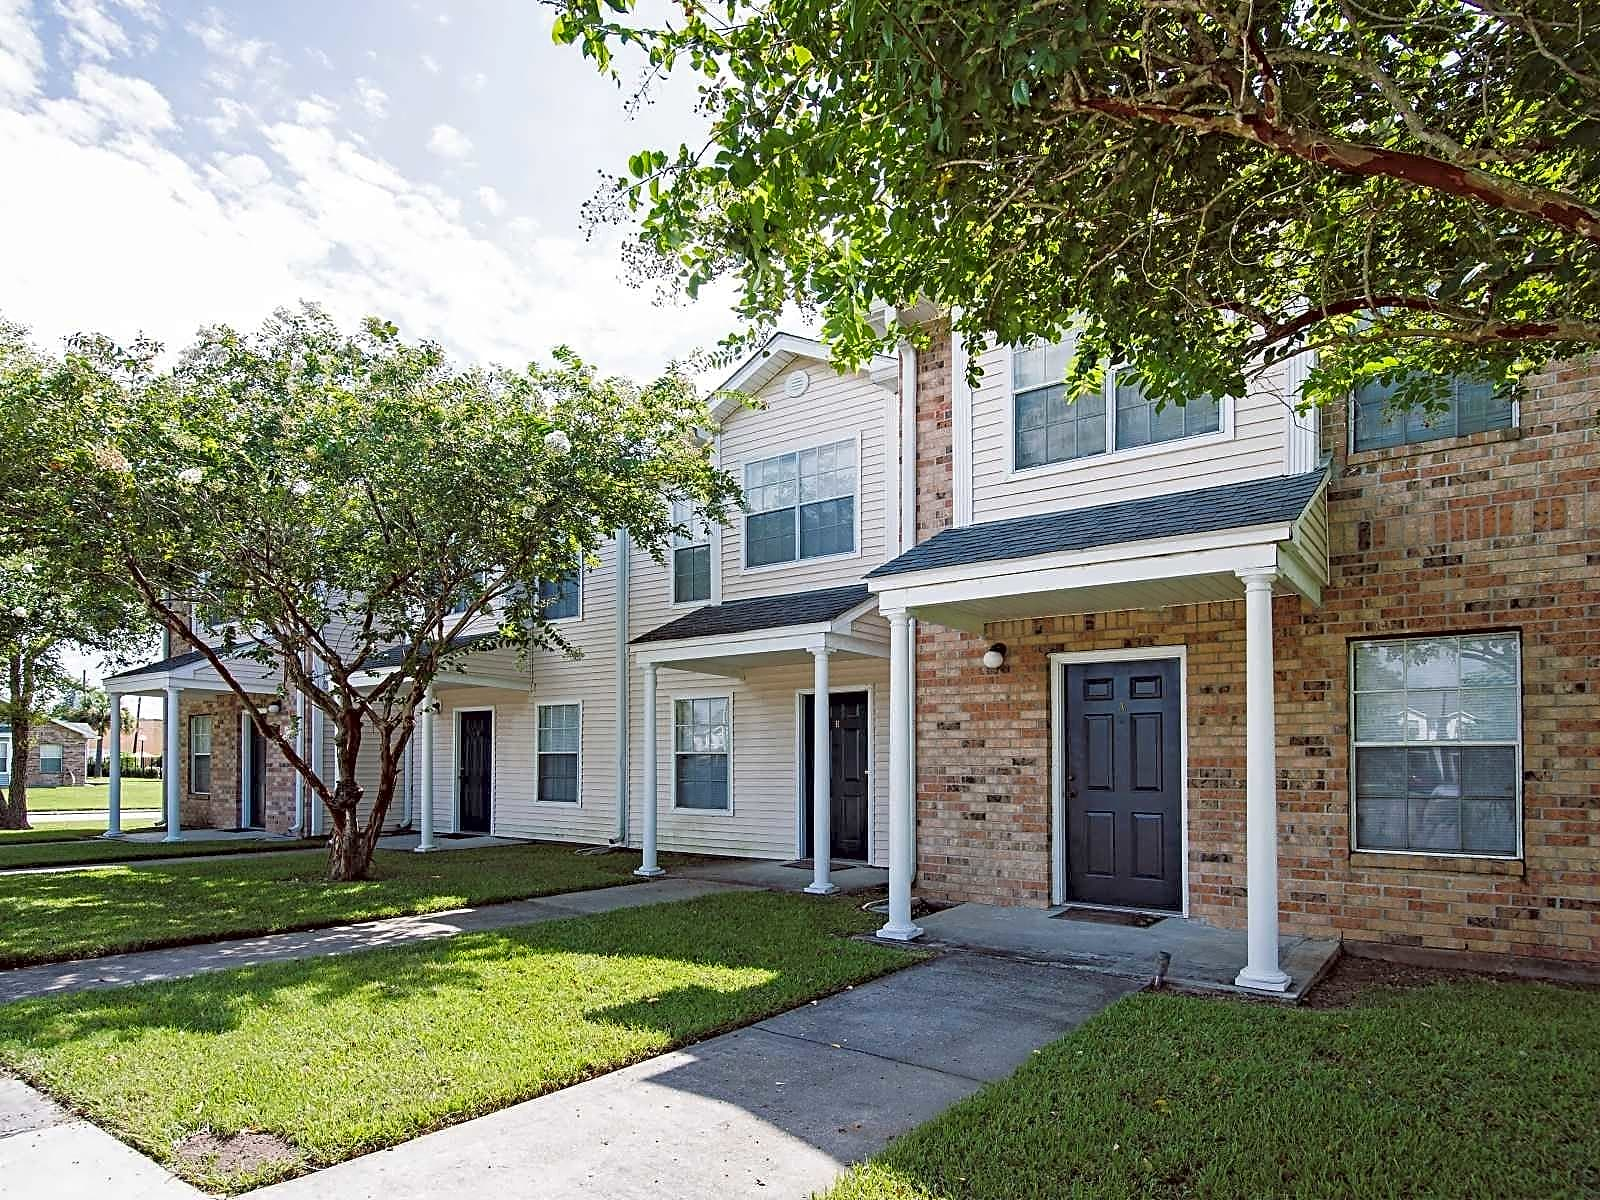 Apartments Near Nicholls Turnberry Townhomes for Nicholls State University Students in Thibodaux, LA